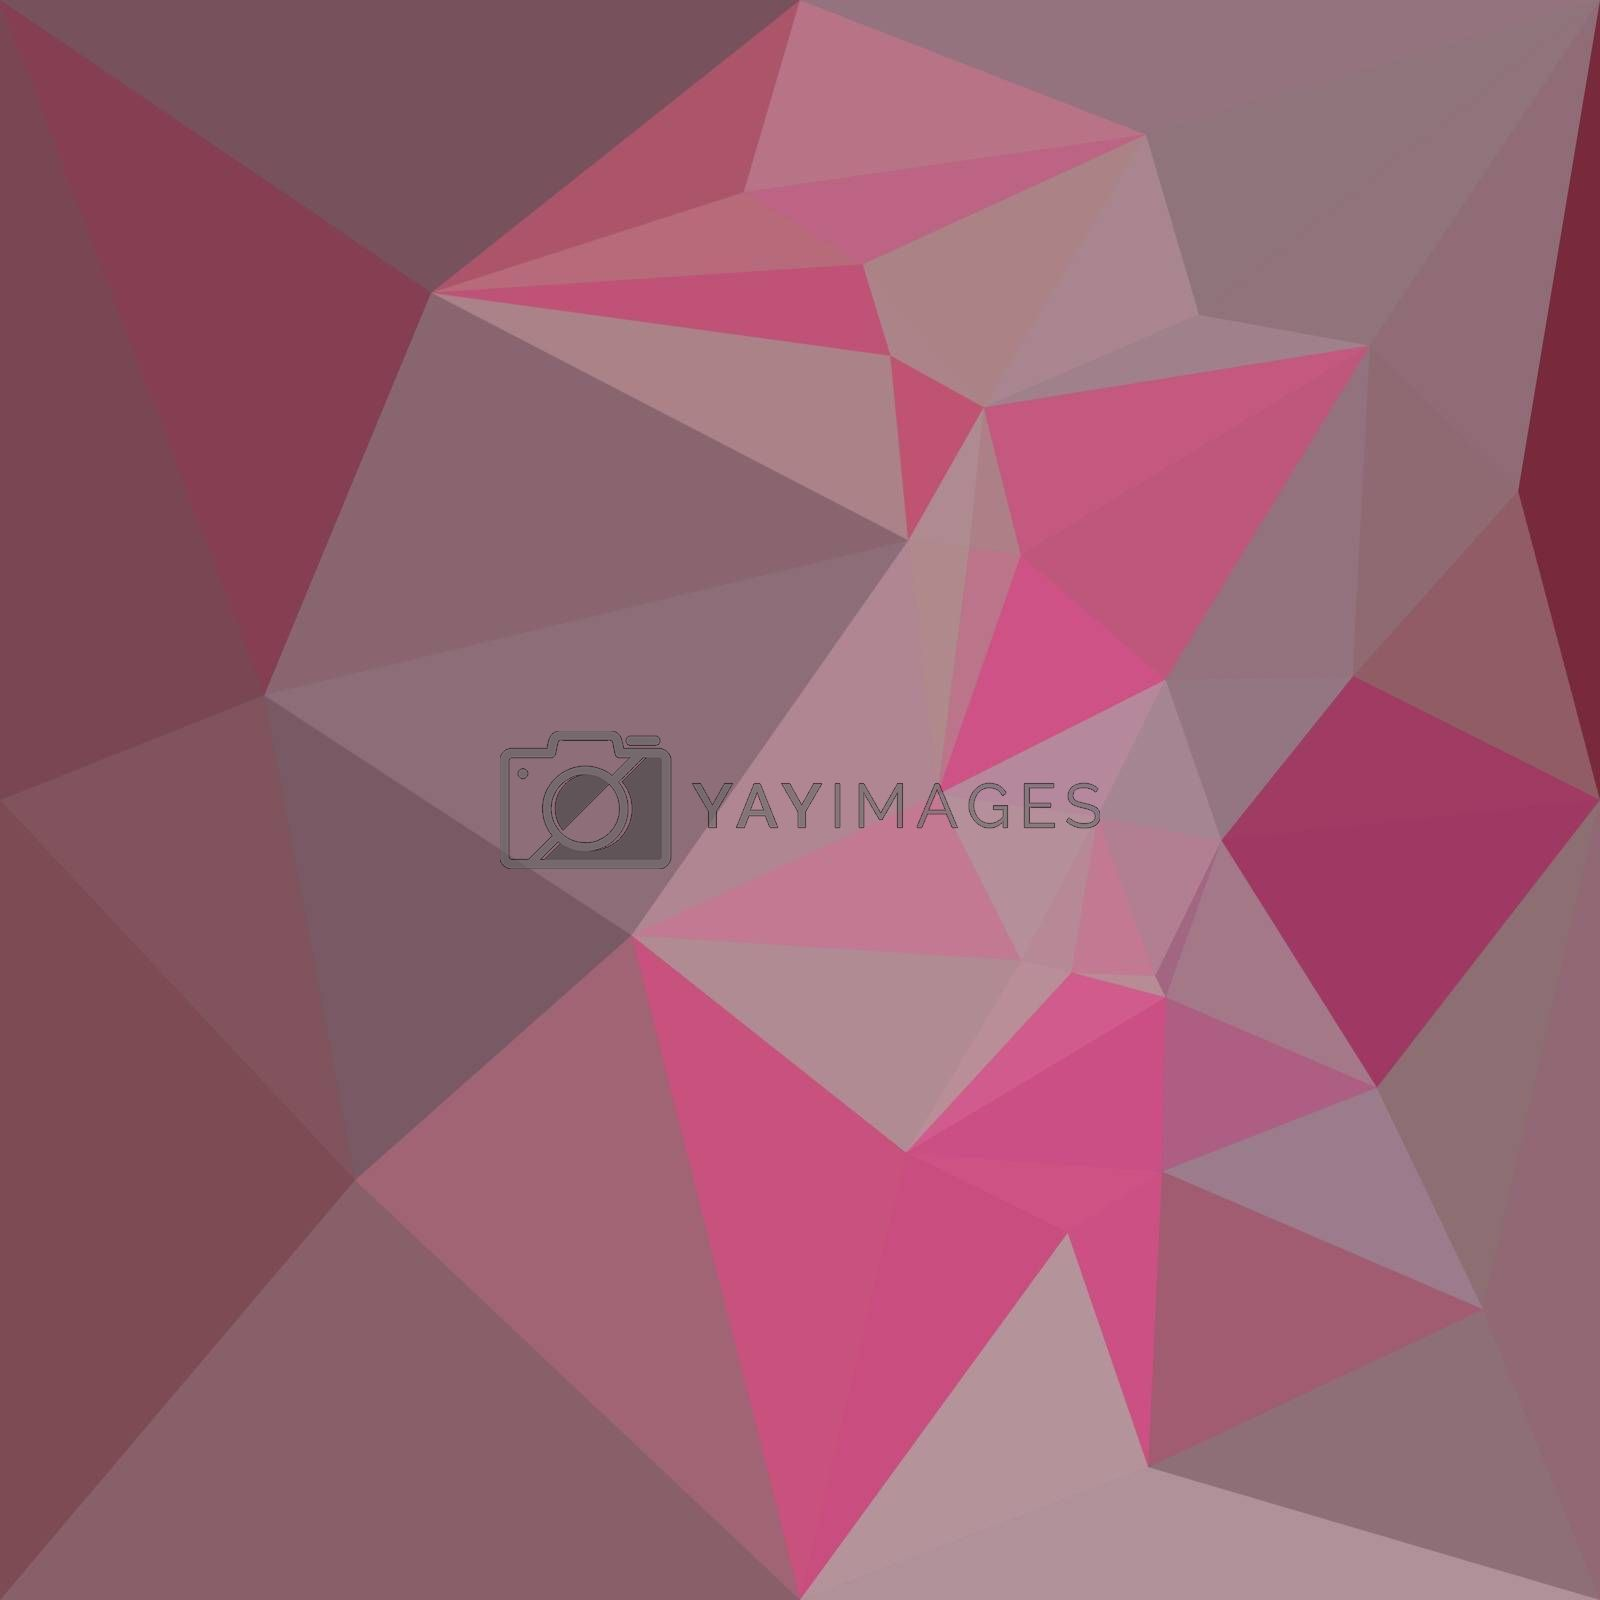 Low polygon style illustration of a fandango pink abstract geometric background.